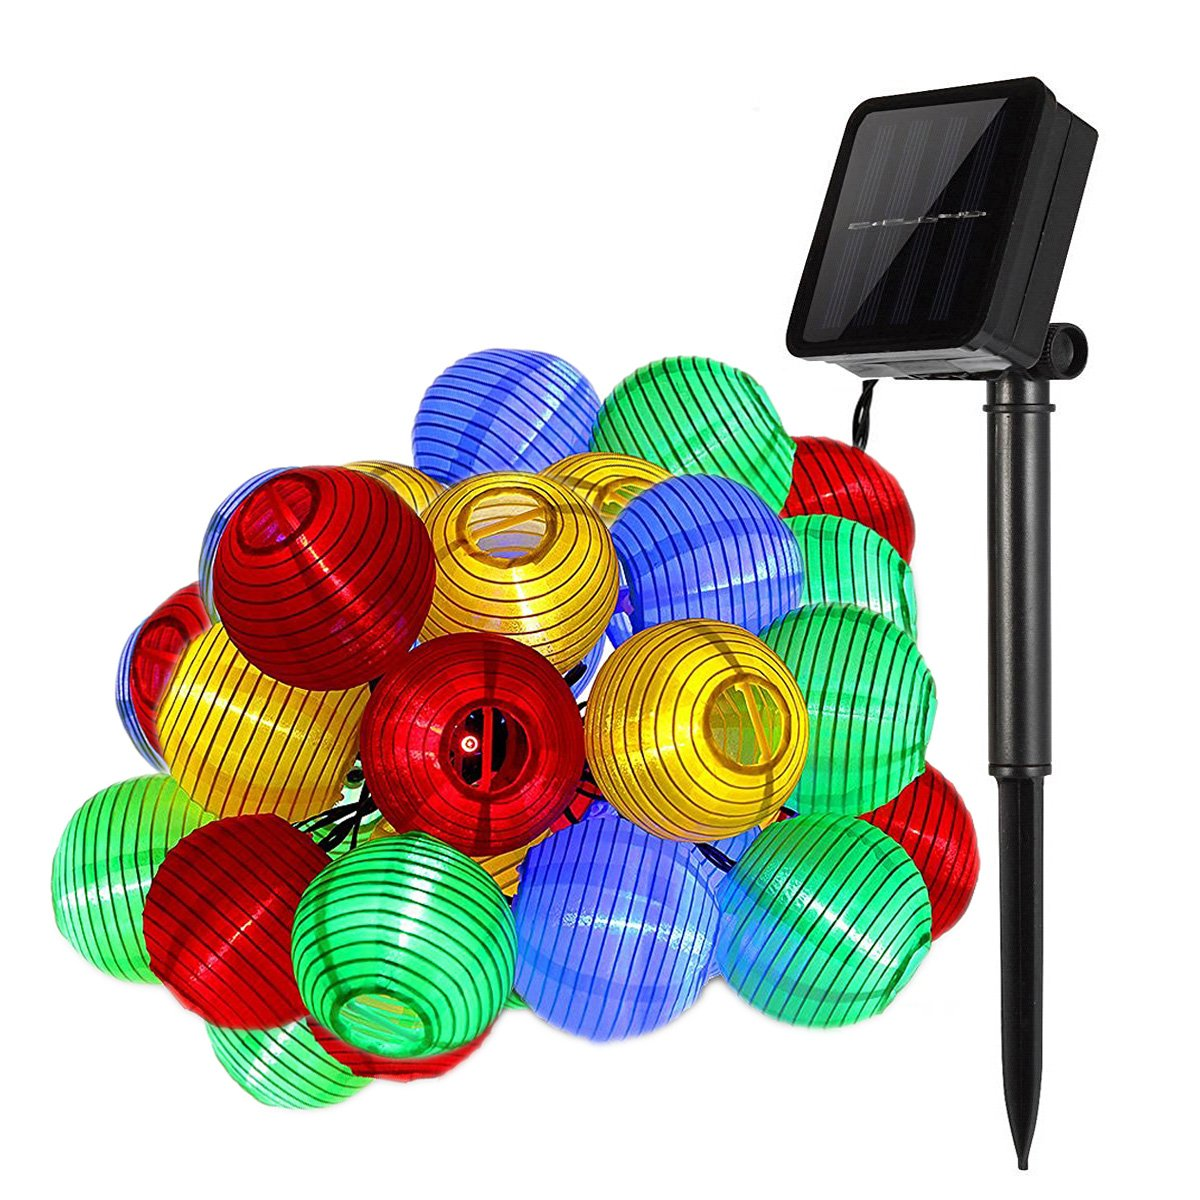 Outdoor Solar String Lights, KINGCOO Waterproof 20FT 30 Leds Chinese Lanterns Solar Powered Christmas Fairy String Lights for Garden Patio Yard PartyHome Decoration(Multi-color)